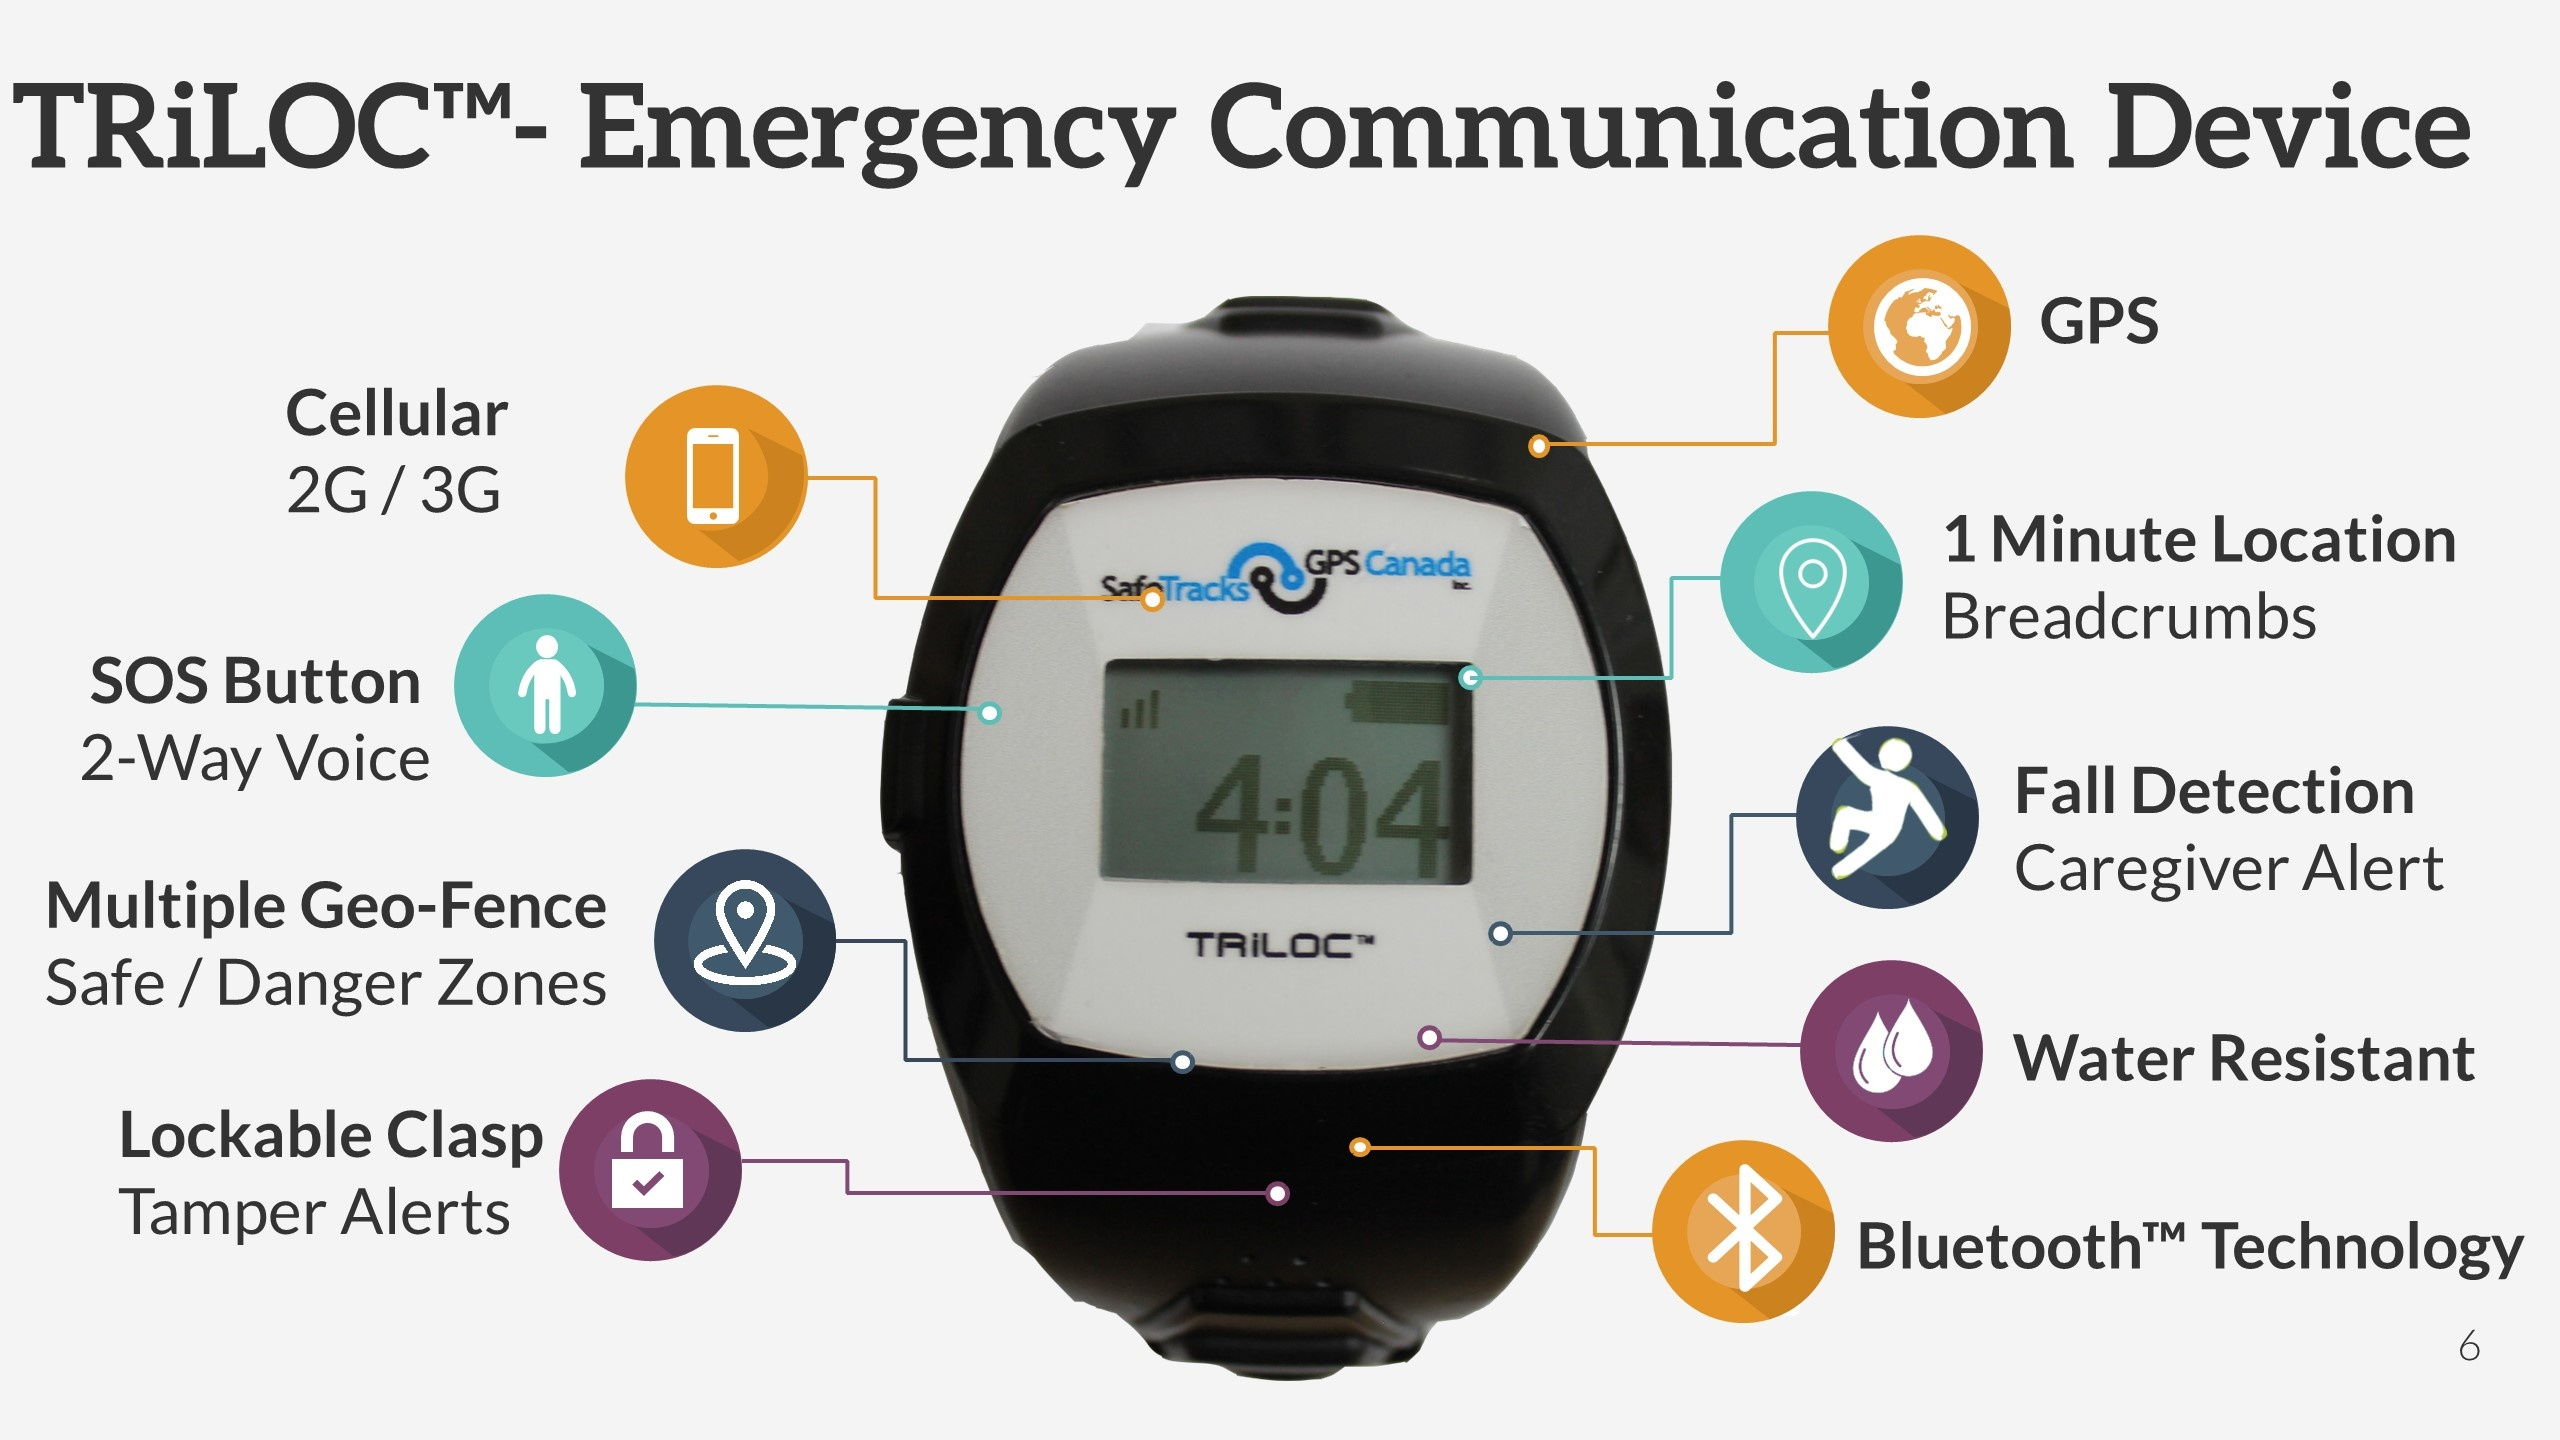 The Triloc Also Features Bluetooth For Indoor Positioning And True Fall Detection Alert Notifications Are Sent To Caregiver Via Text Message Or